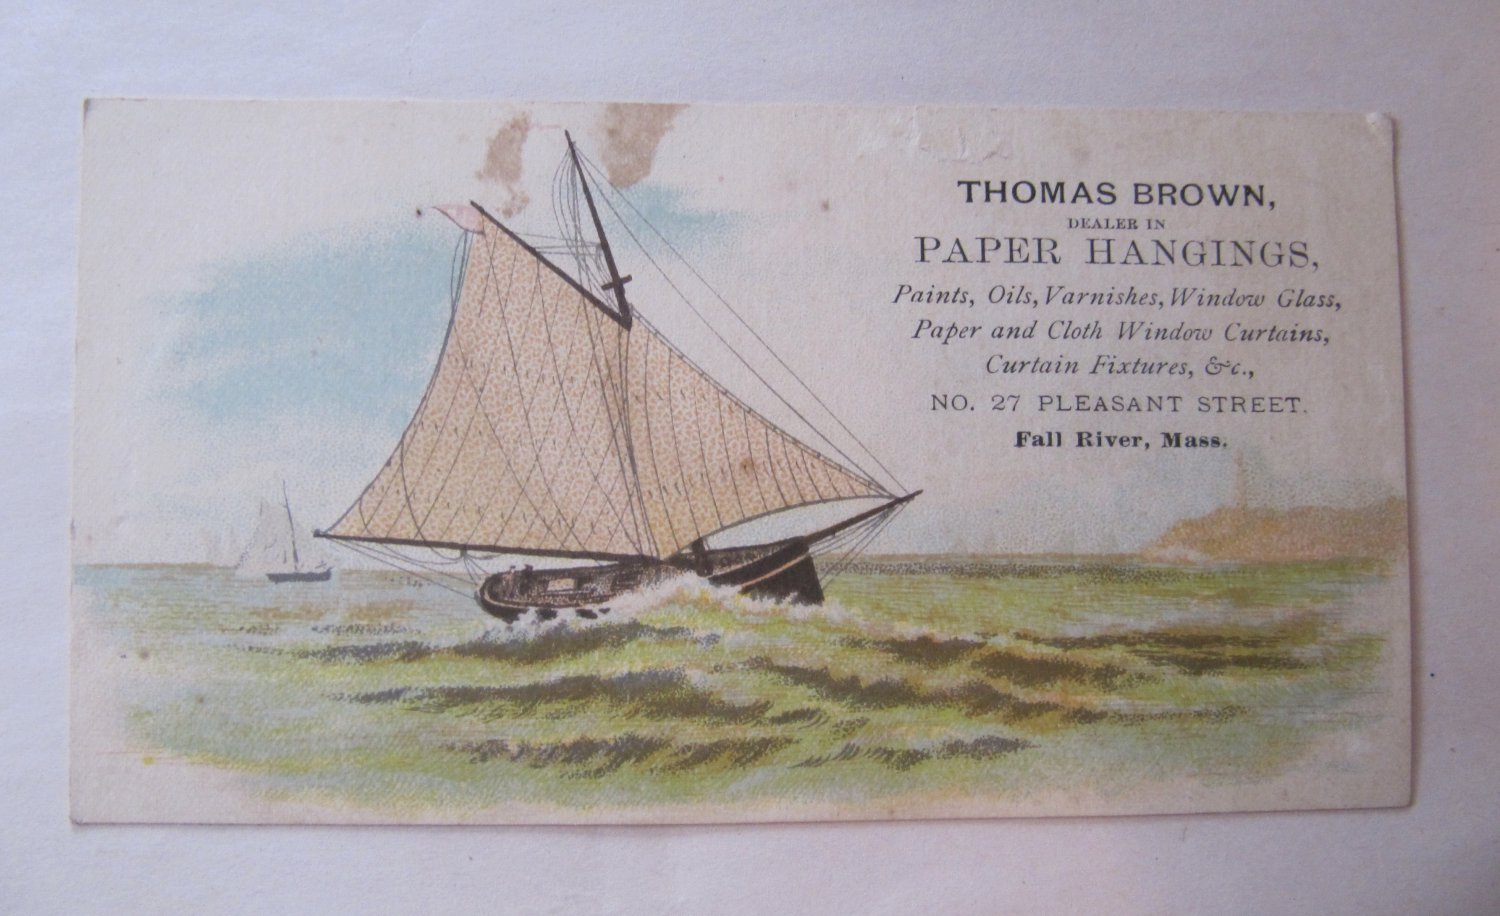 Rare c 1880s Antique Victorian Business Trade Card Thomas Brown Paper Hangings Fall River Sailboat